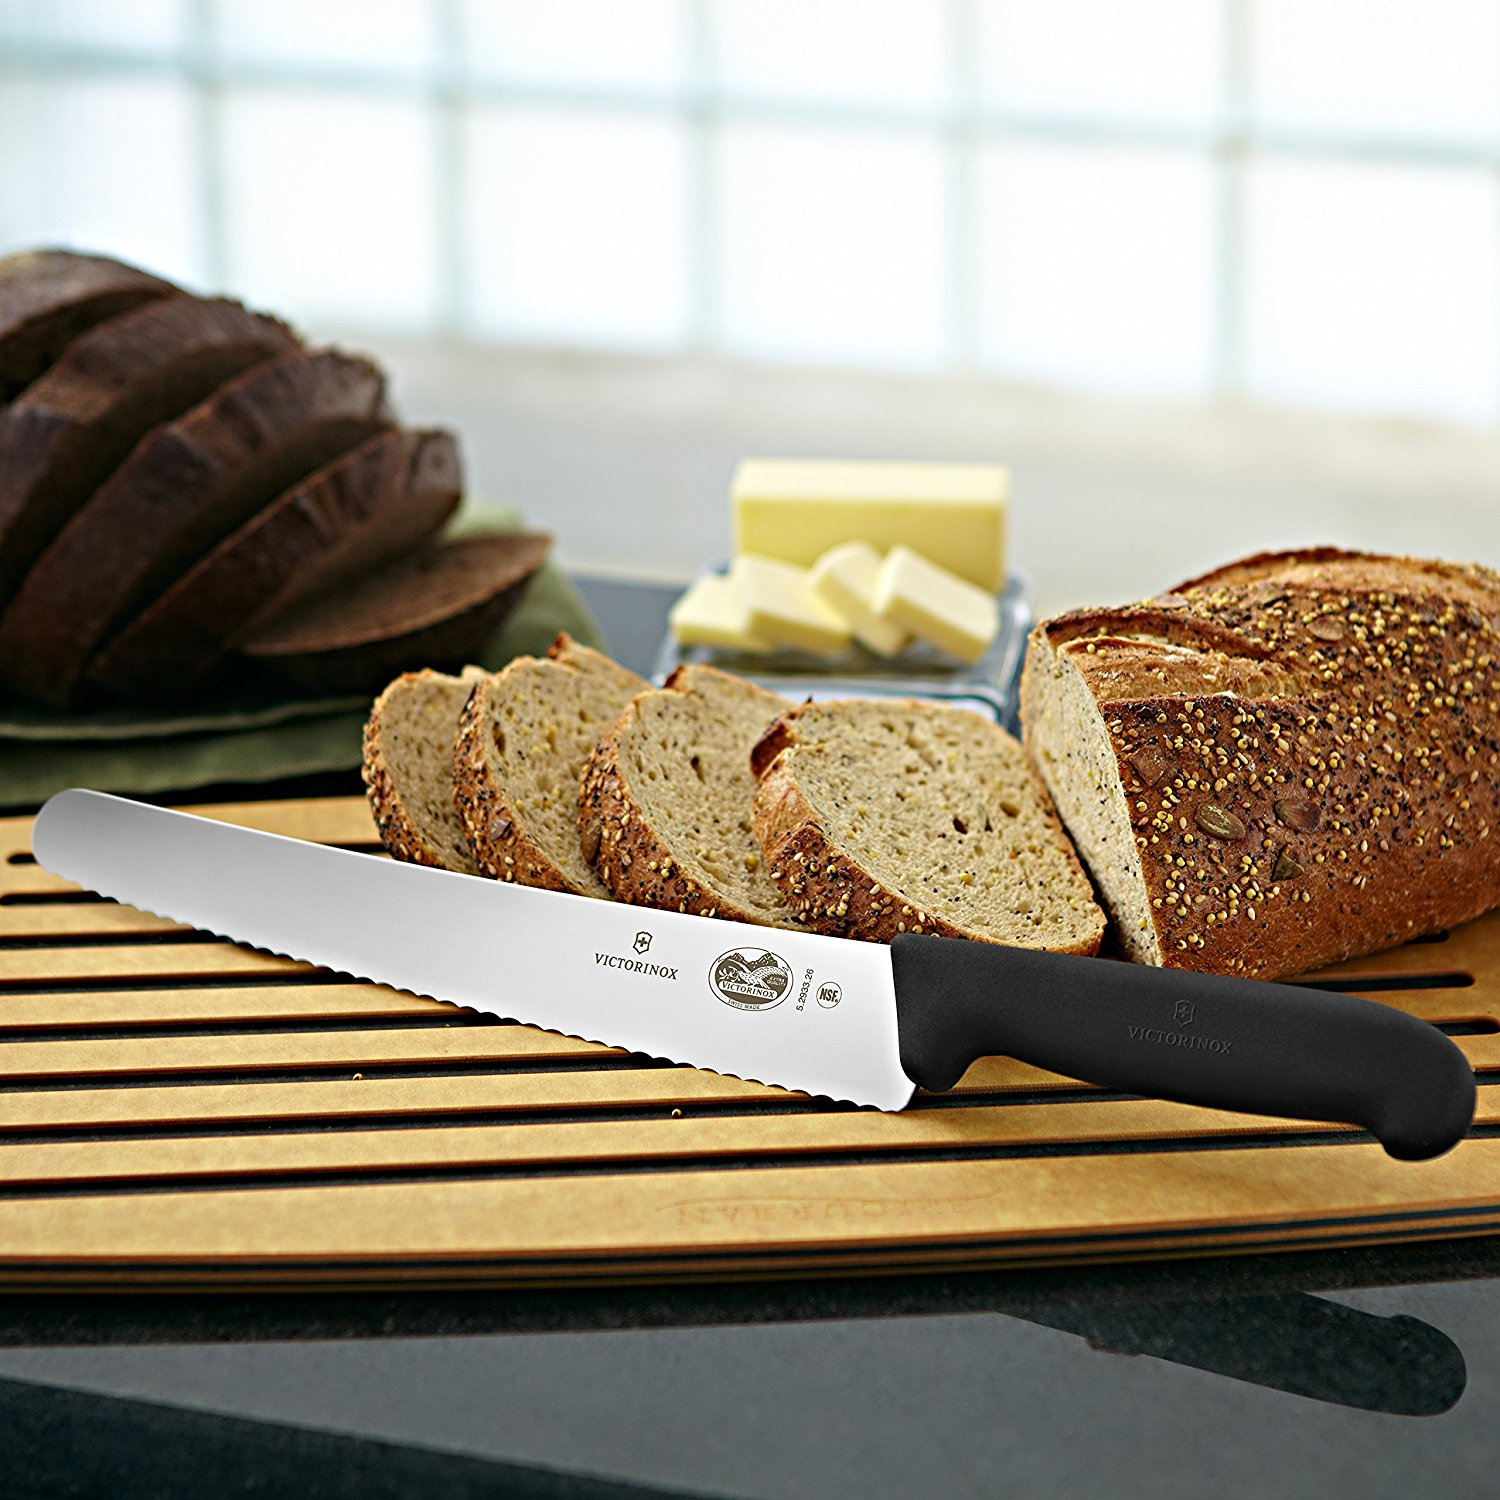 Victorinox Fibrox Pastry and Bread Knife